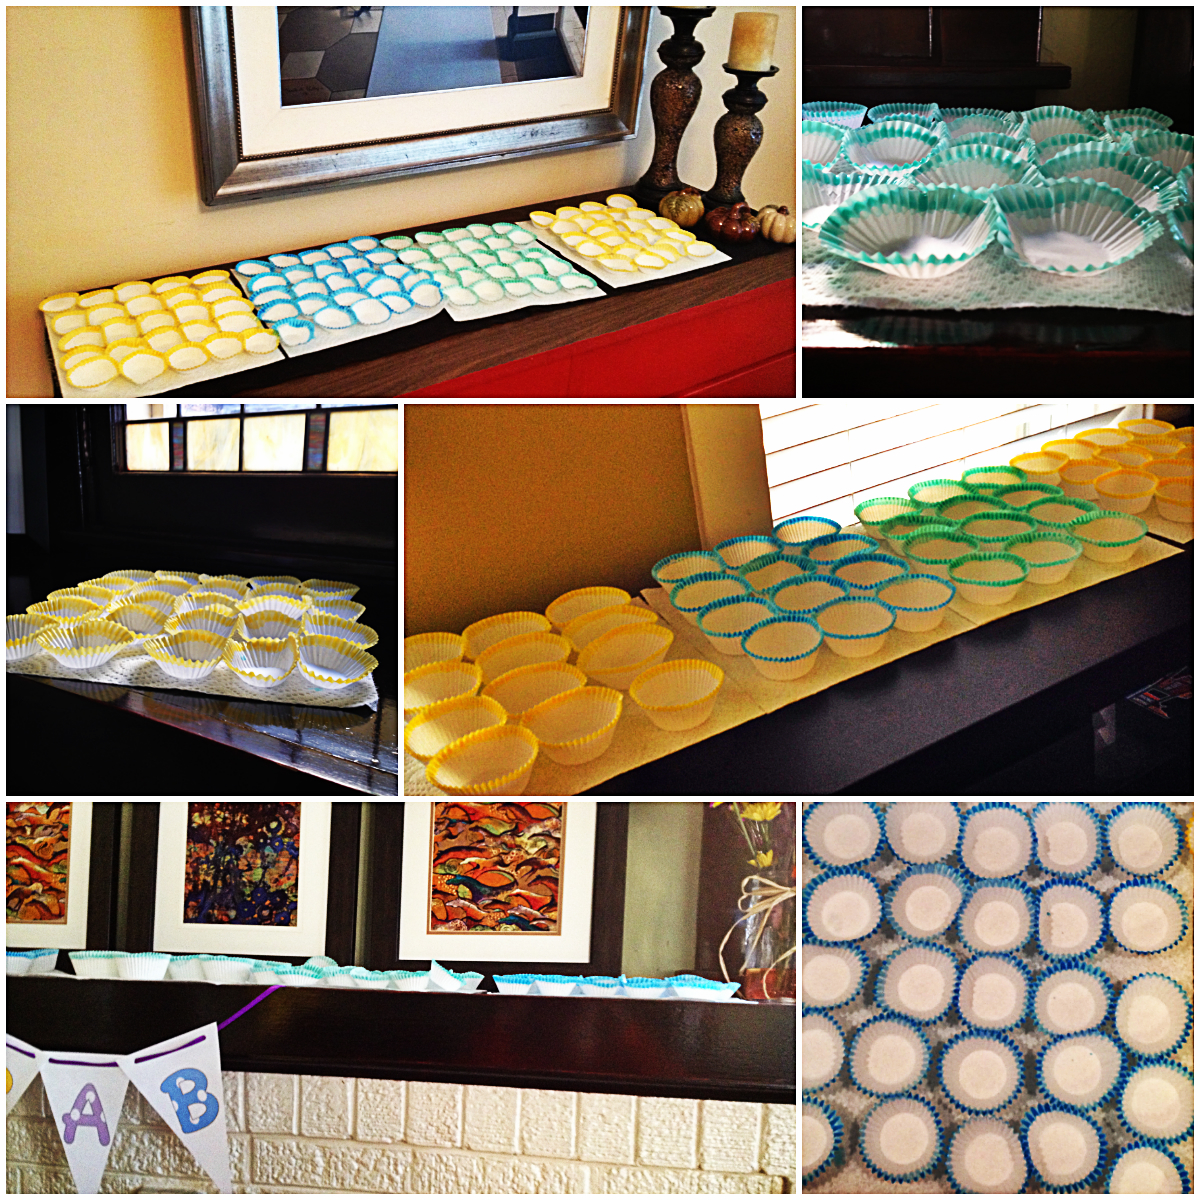 How to customize cupcake liners using dye